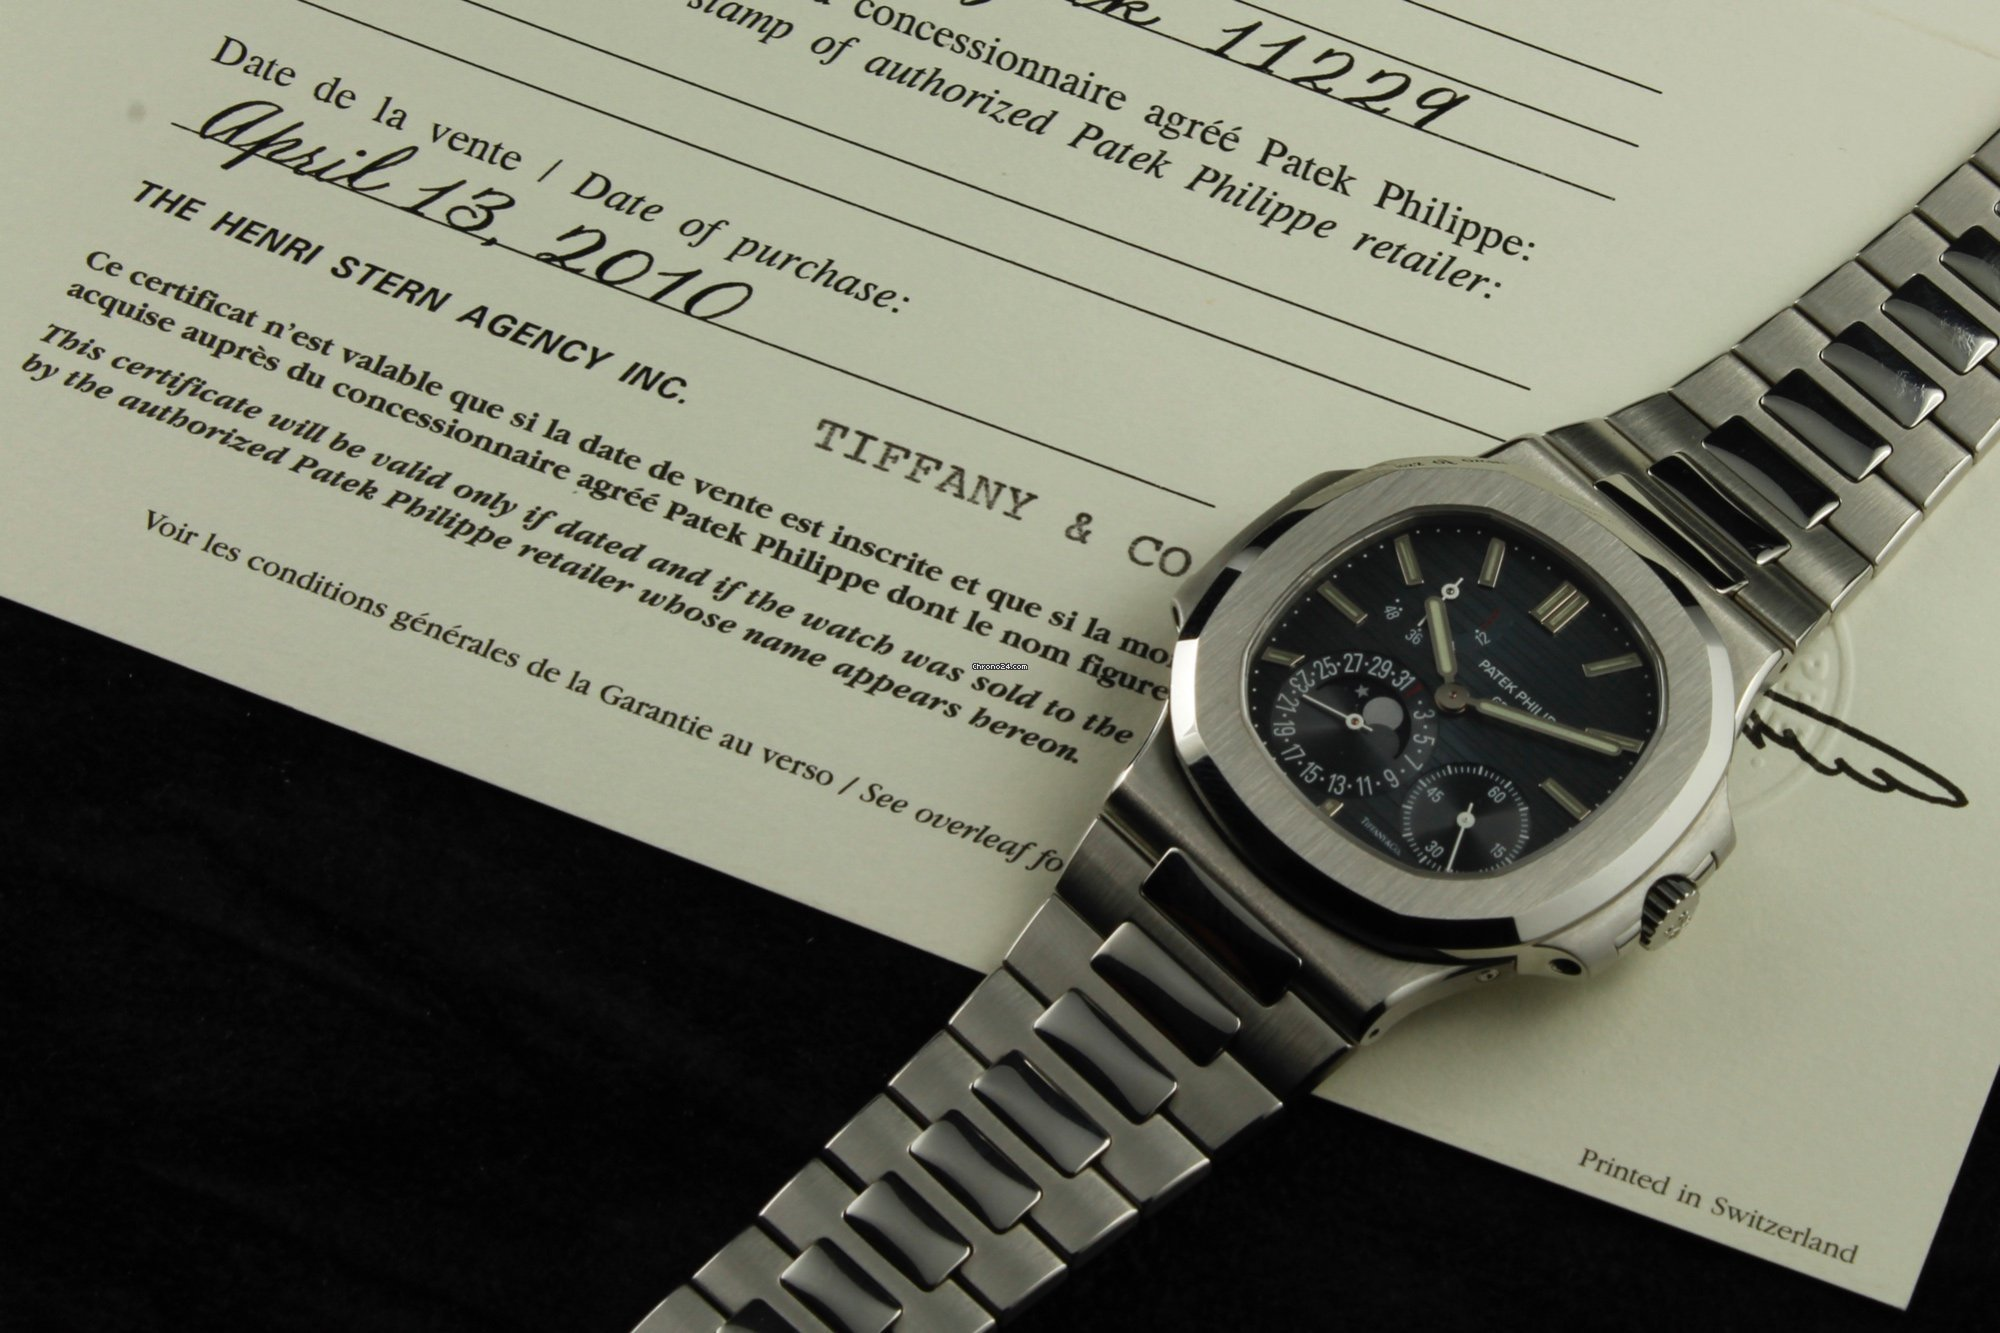 120135256ee Patek Philippe Nautilus Tiffany for Price on request for sale from a  Trusted Seller on Chrono24